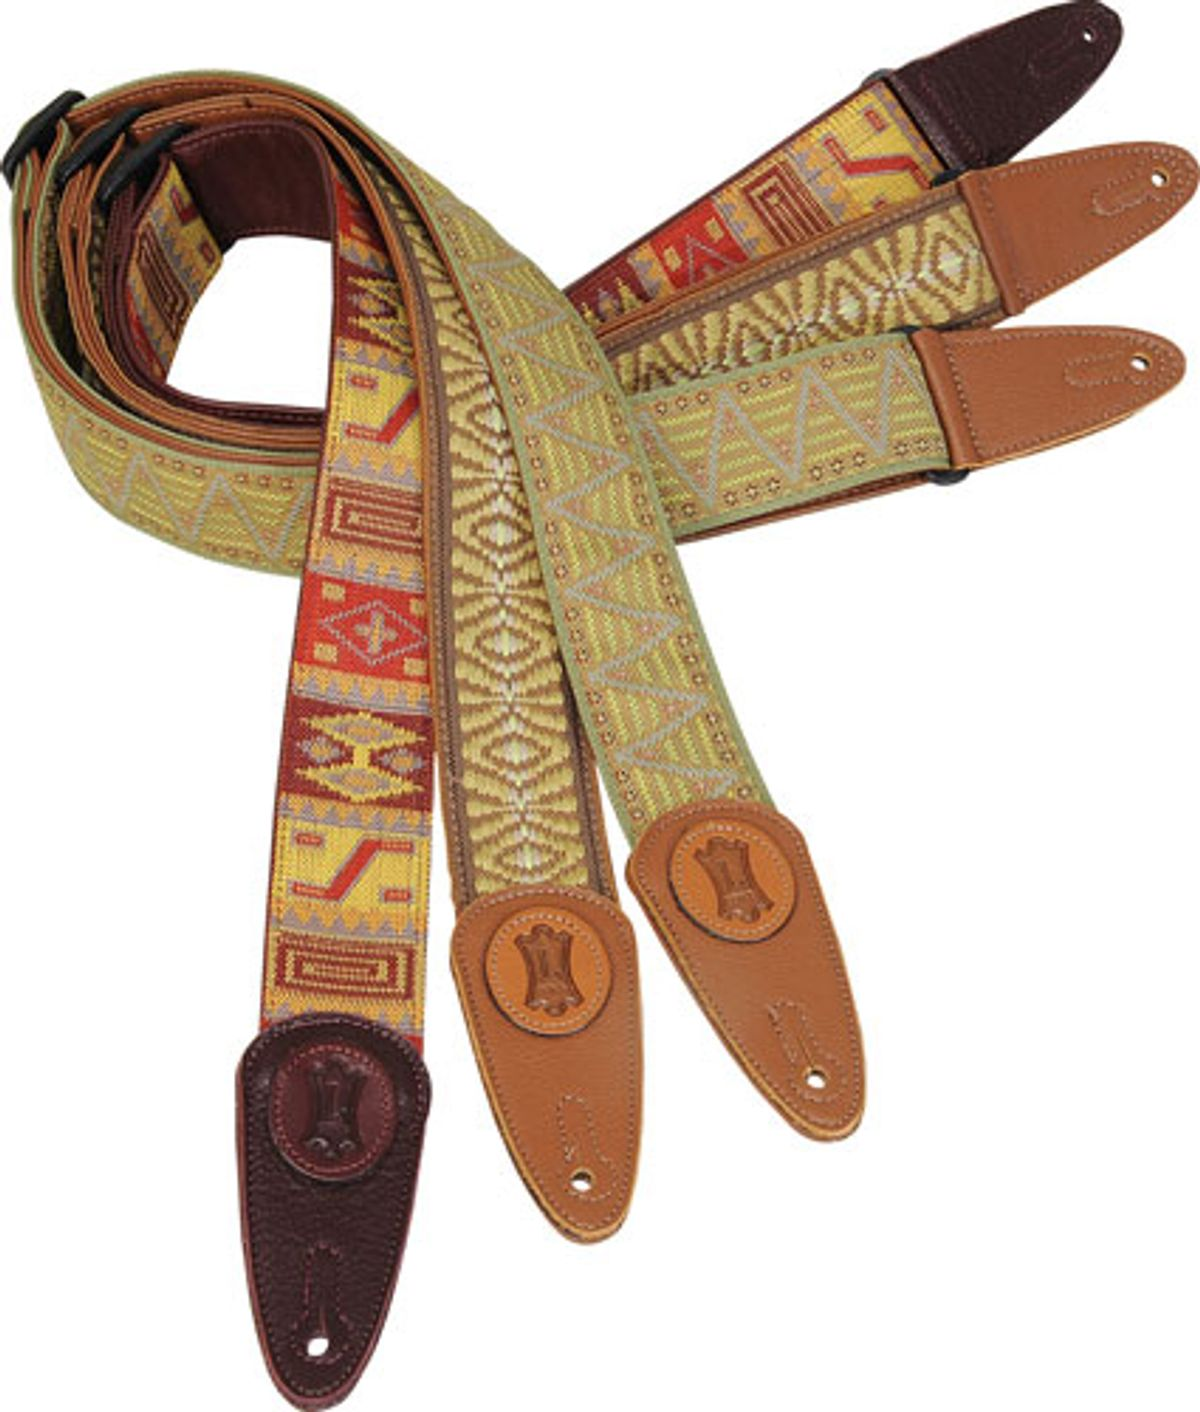 Levy's Leathers Introduces MGJ2 Strap Series